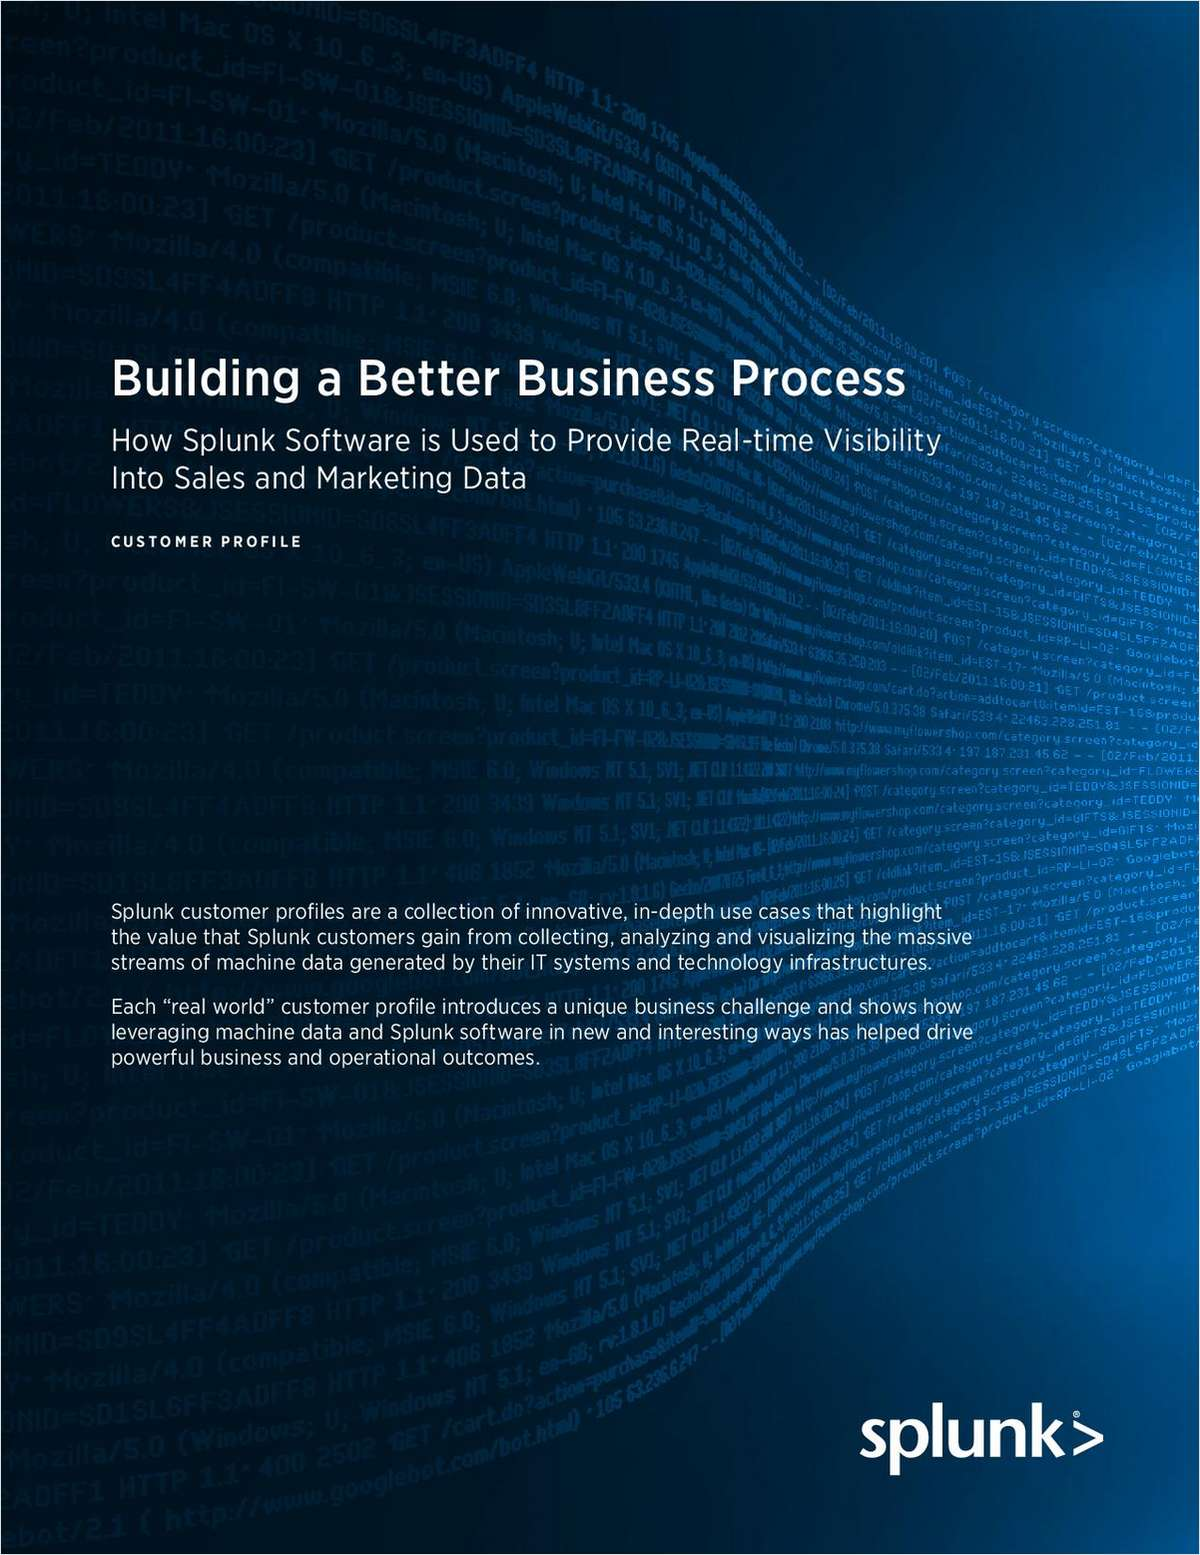 Building a Better Business Process